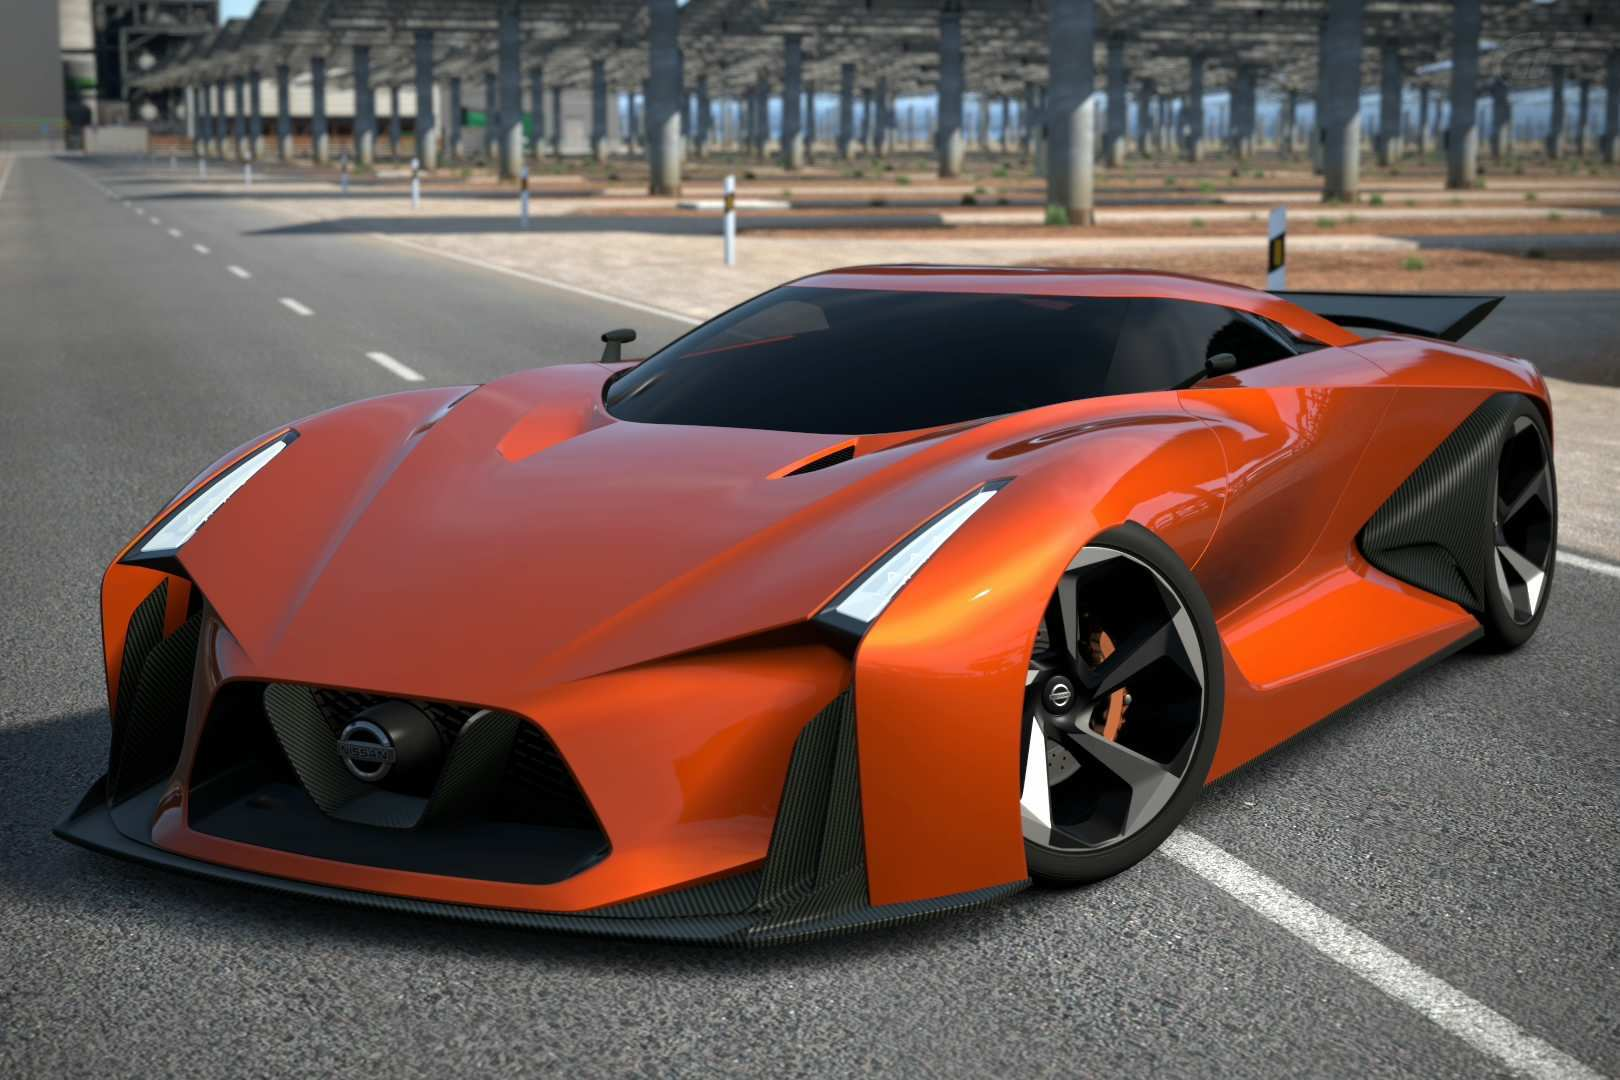 55 All New 2020 Nissan Gran Turismo Performance and New Engine for 2020 Nissan Gran Turismo